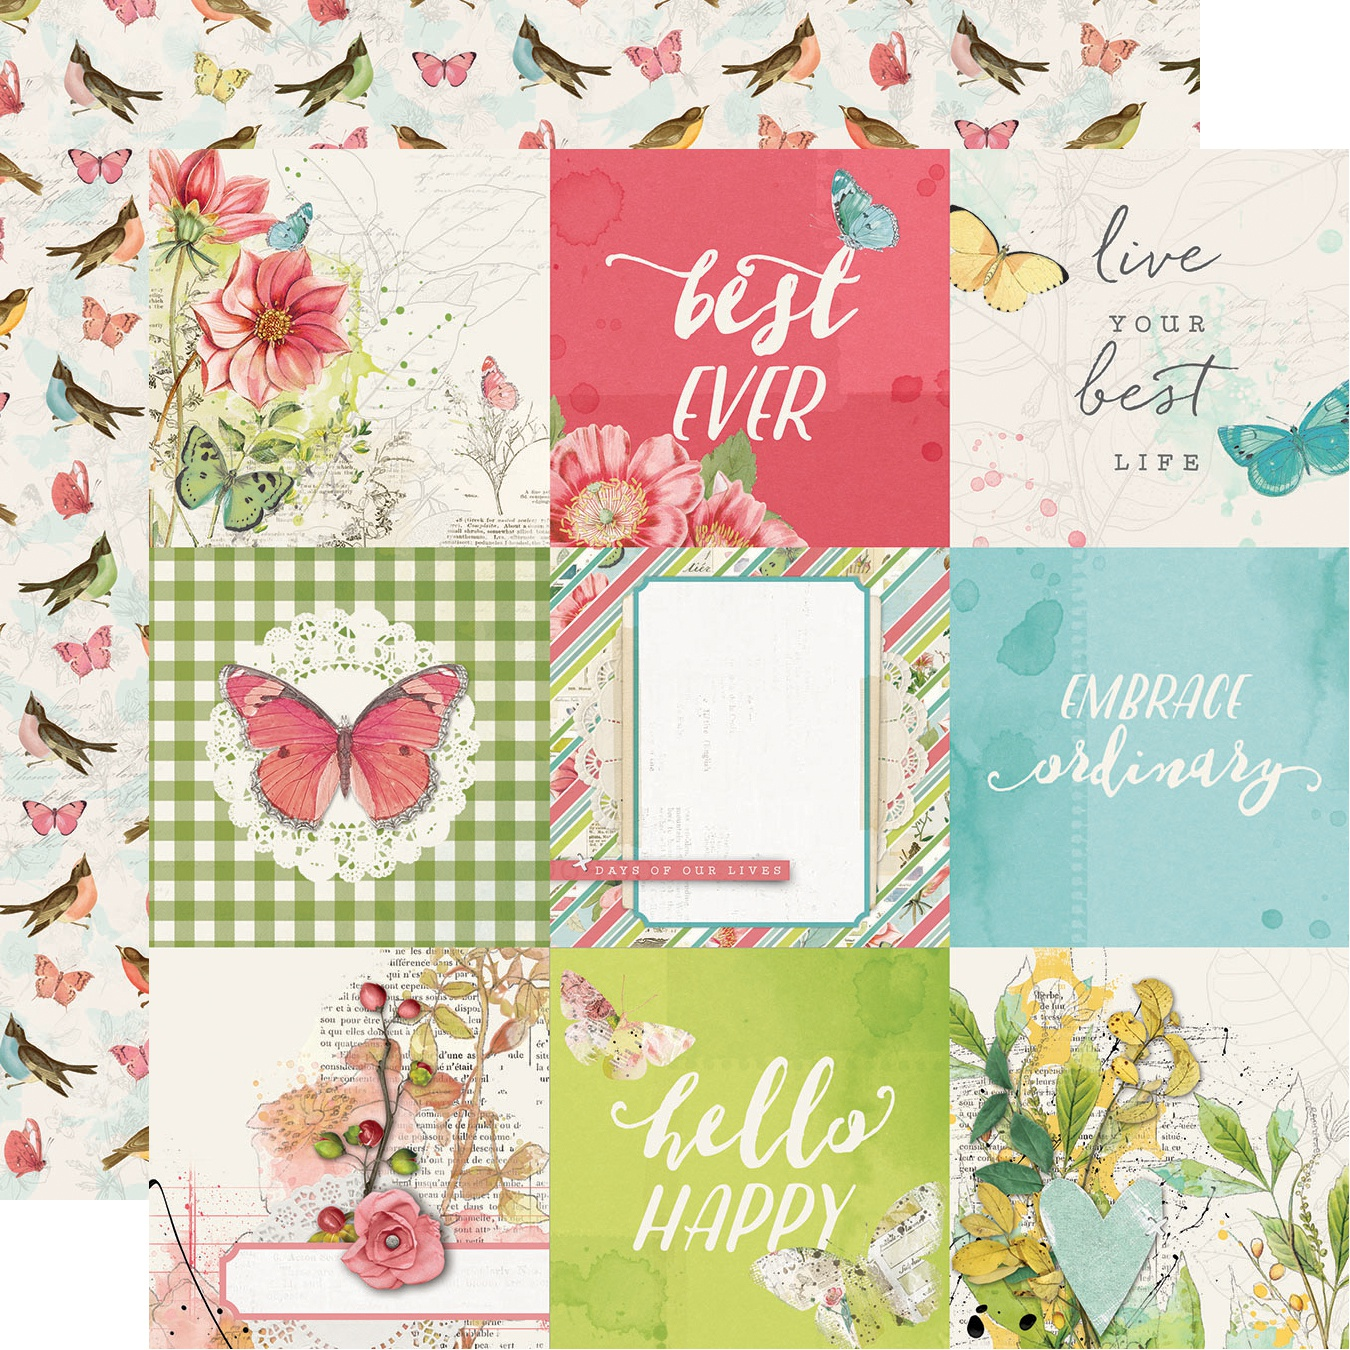 Simple Vintage Botanicals Double-Sided Cardstock 12X12-4X4 Elements